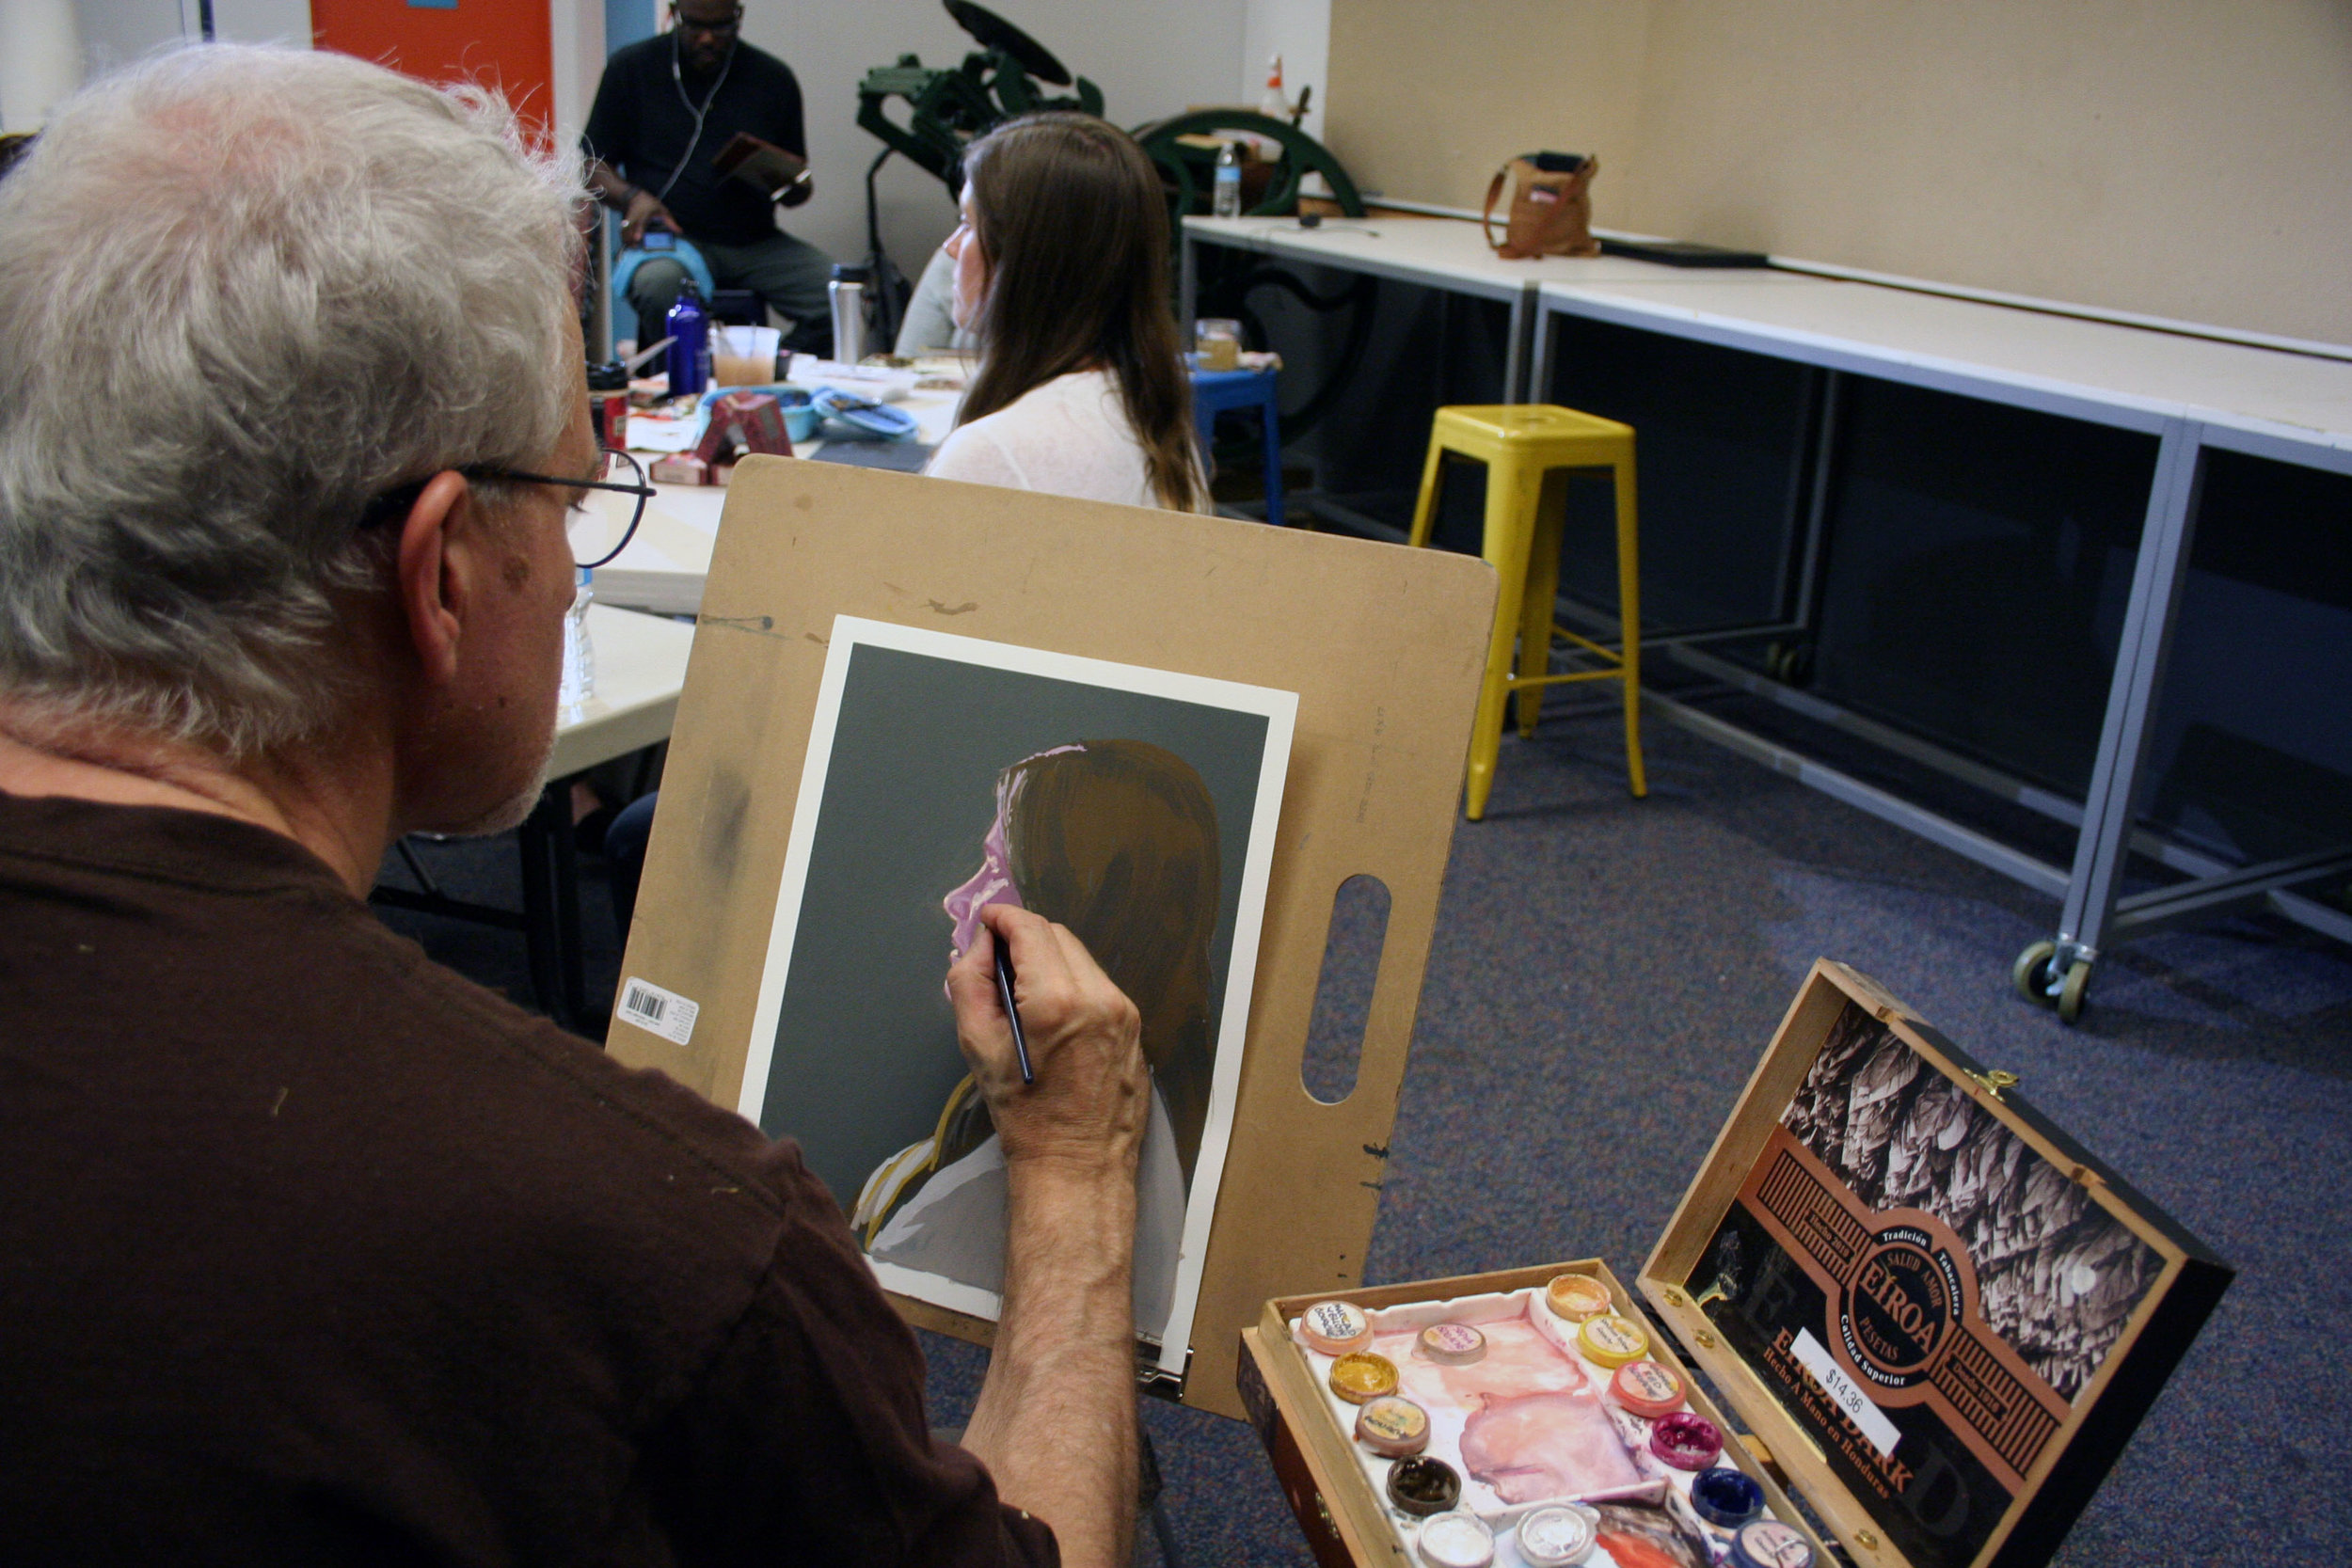 Duane working with gouache. Photo by Brian Pierce